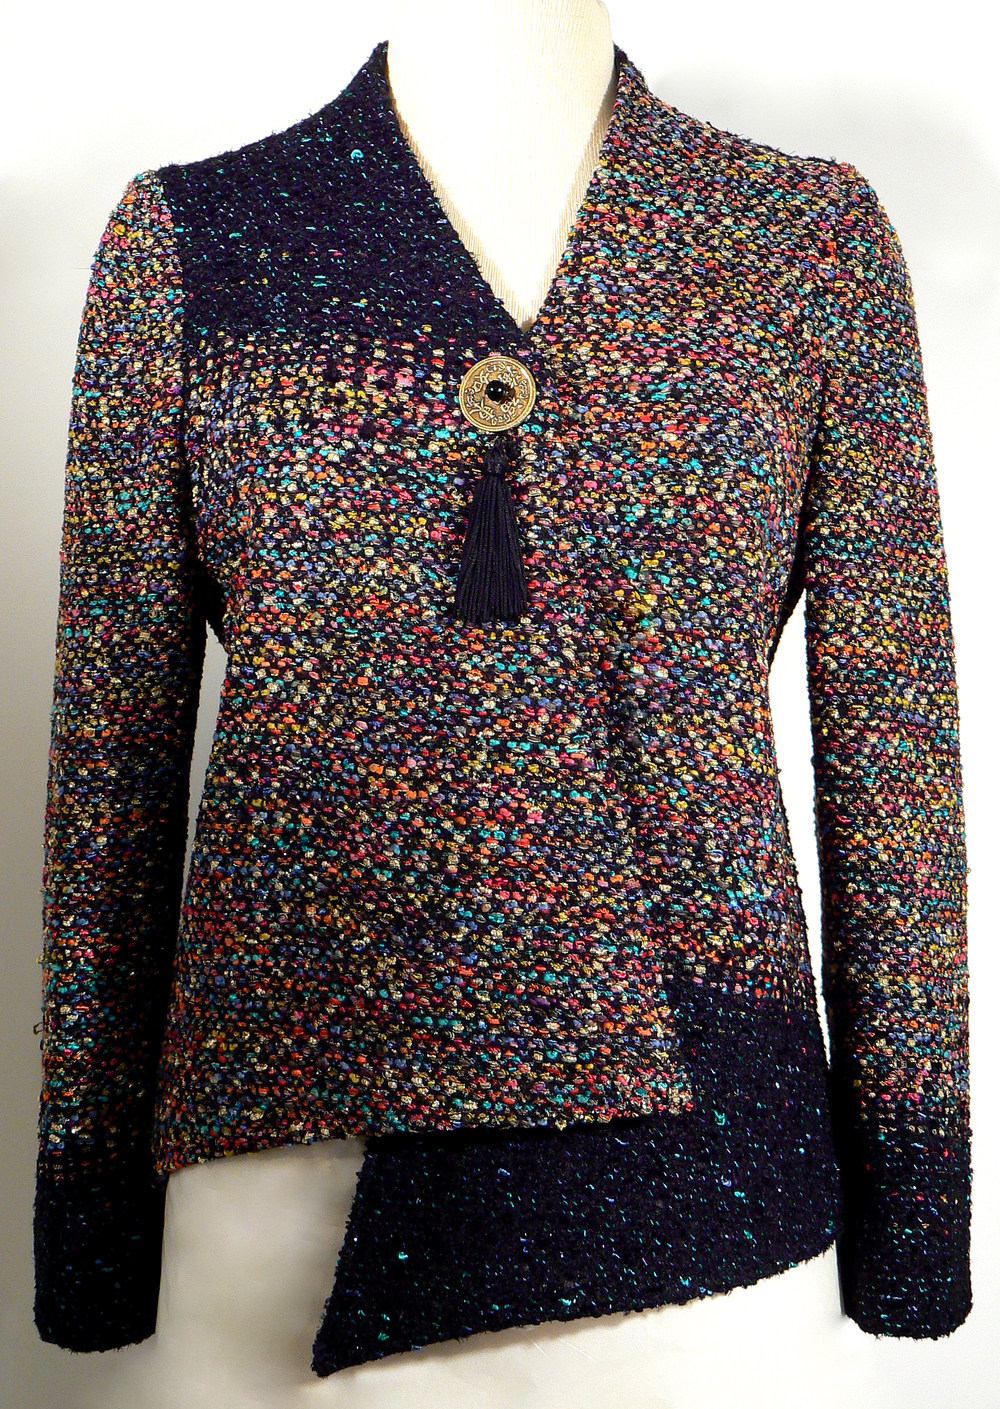 Handwoven Jacket Kathleen Weir-West 4-001.JPG